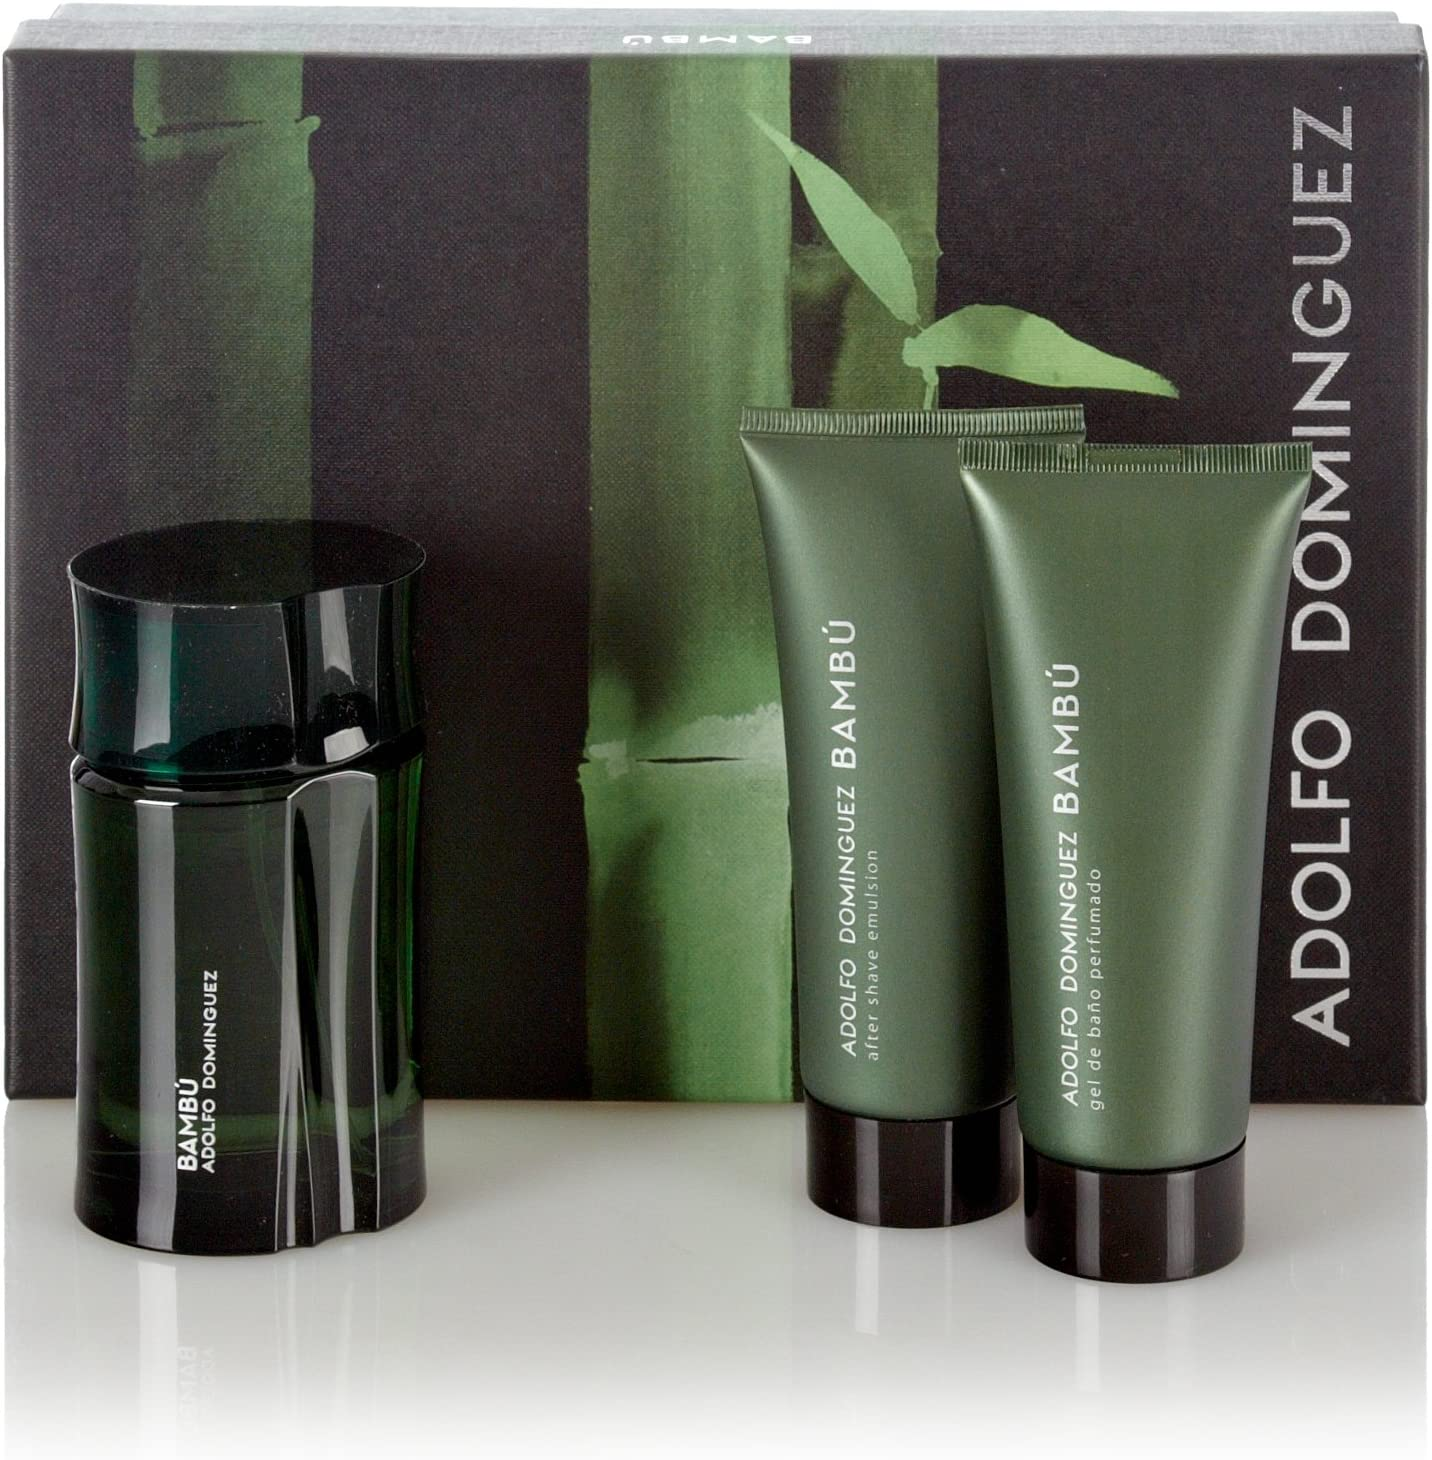 Adolfo Dominguez Estuche Bambú Men Edt 120 ml + After Shave 100 ml + Gel 100 ml: Amazon.es: Belleza